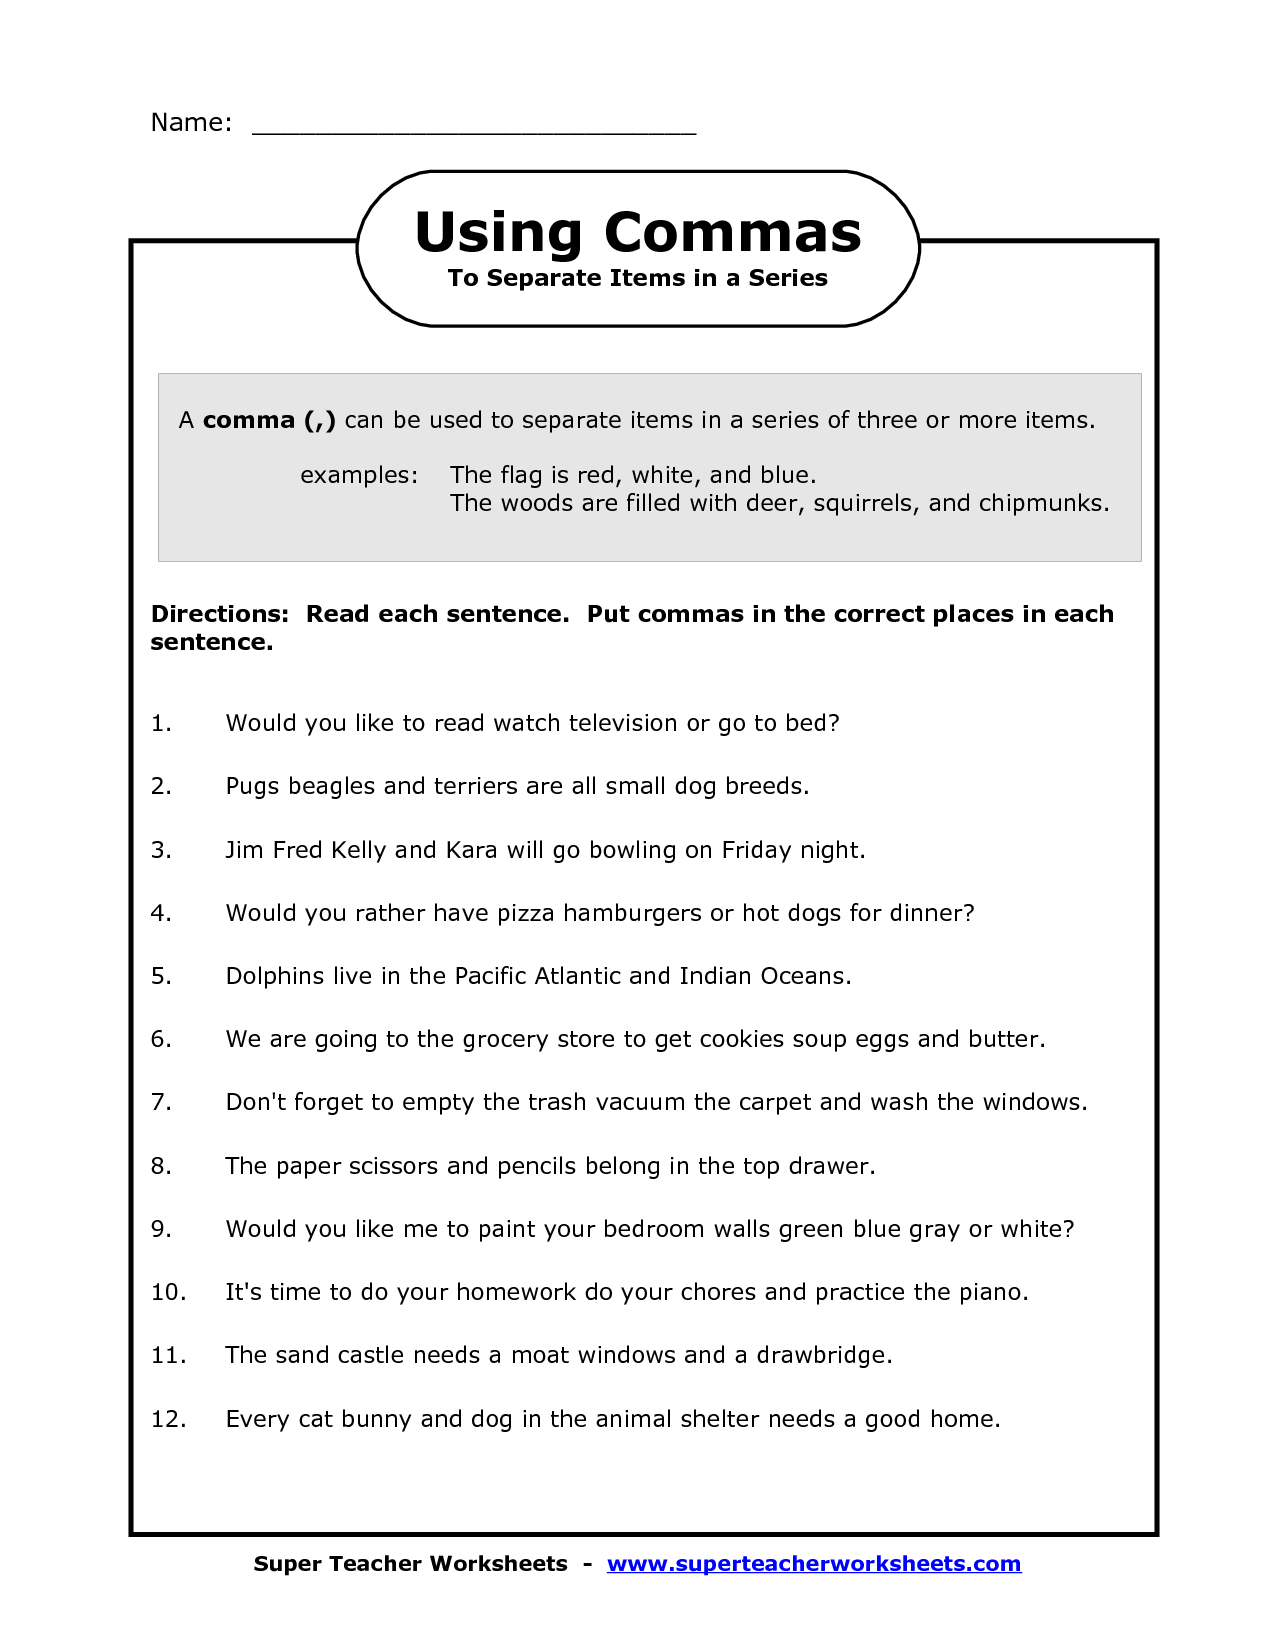 Comma In A Series Worksheets Image